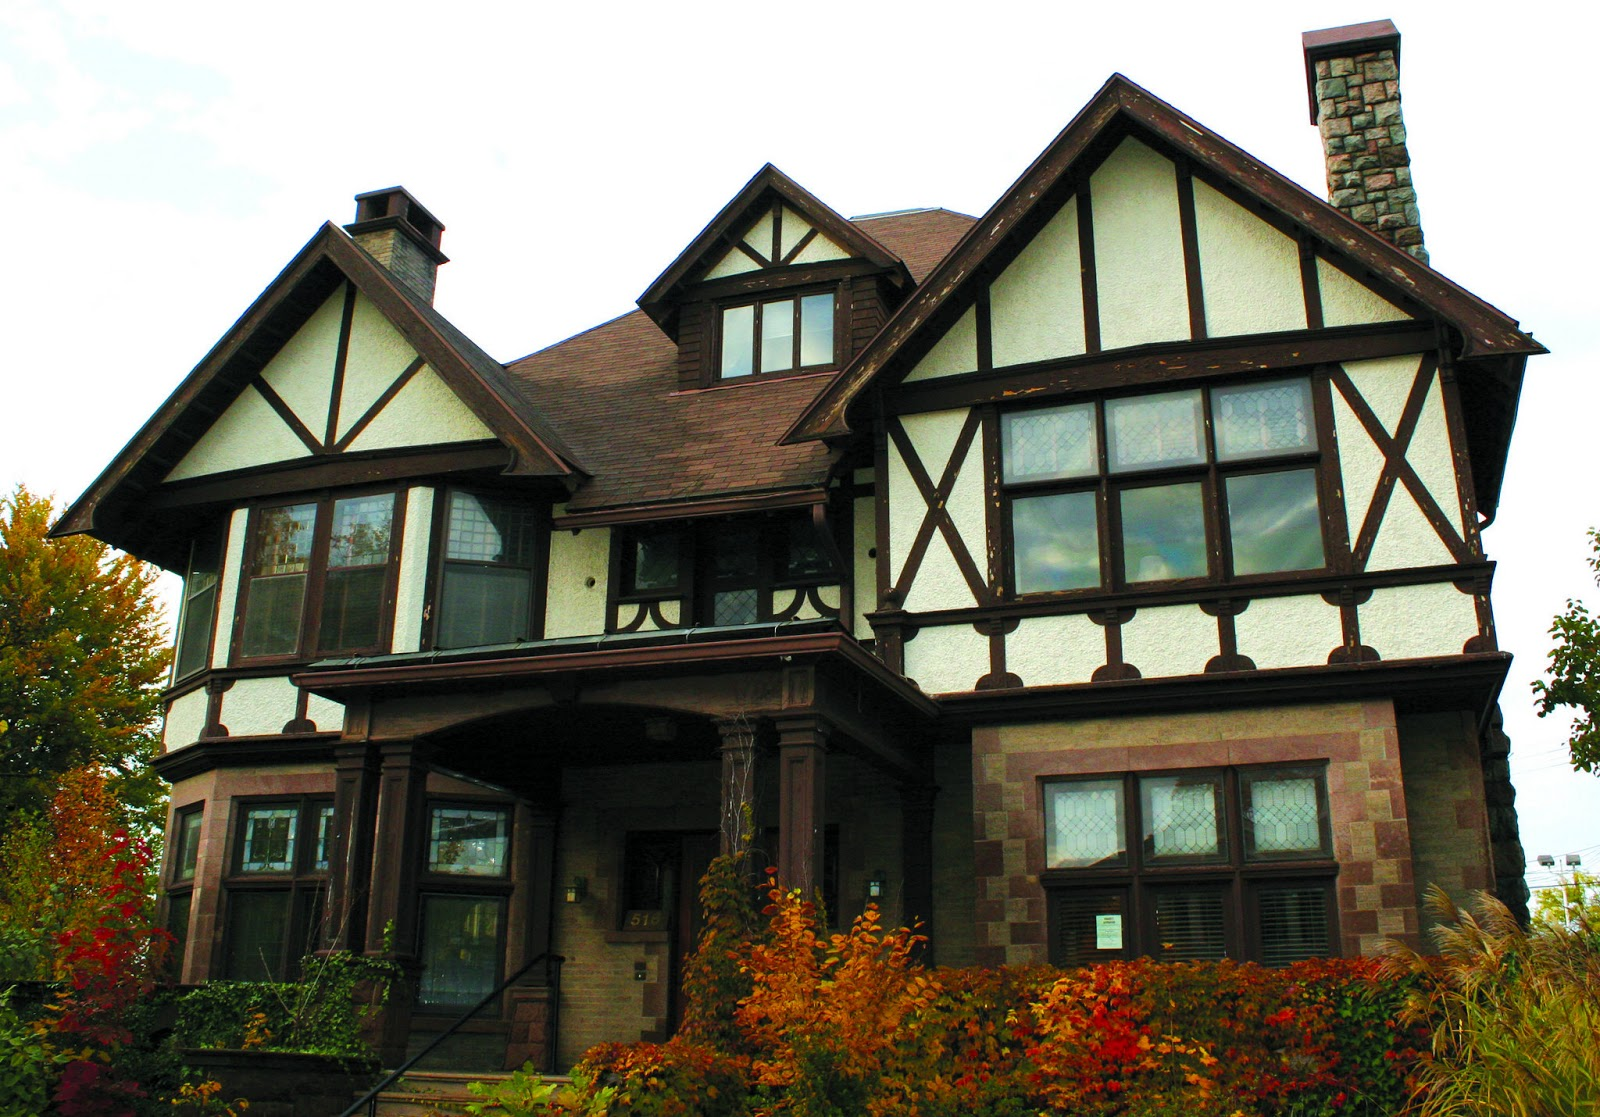 Haley 39 s interior design blog housing styles for Tudor colonial style home